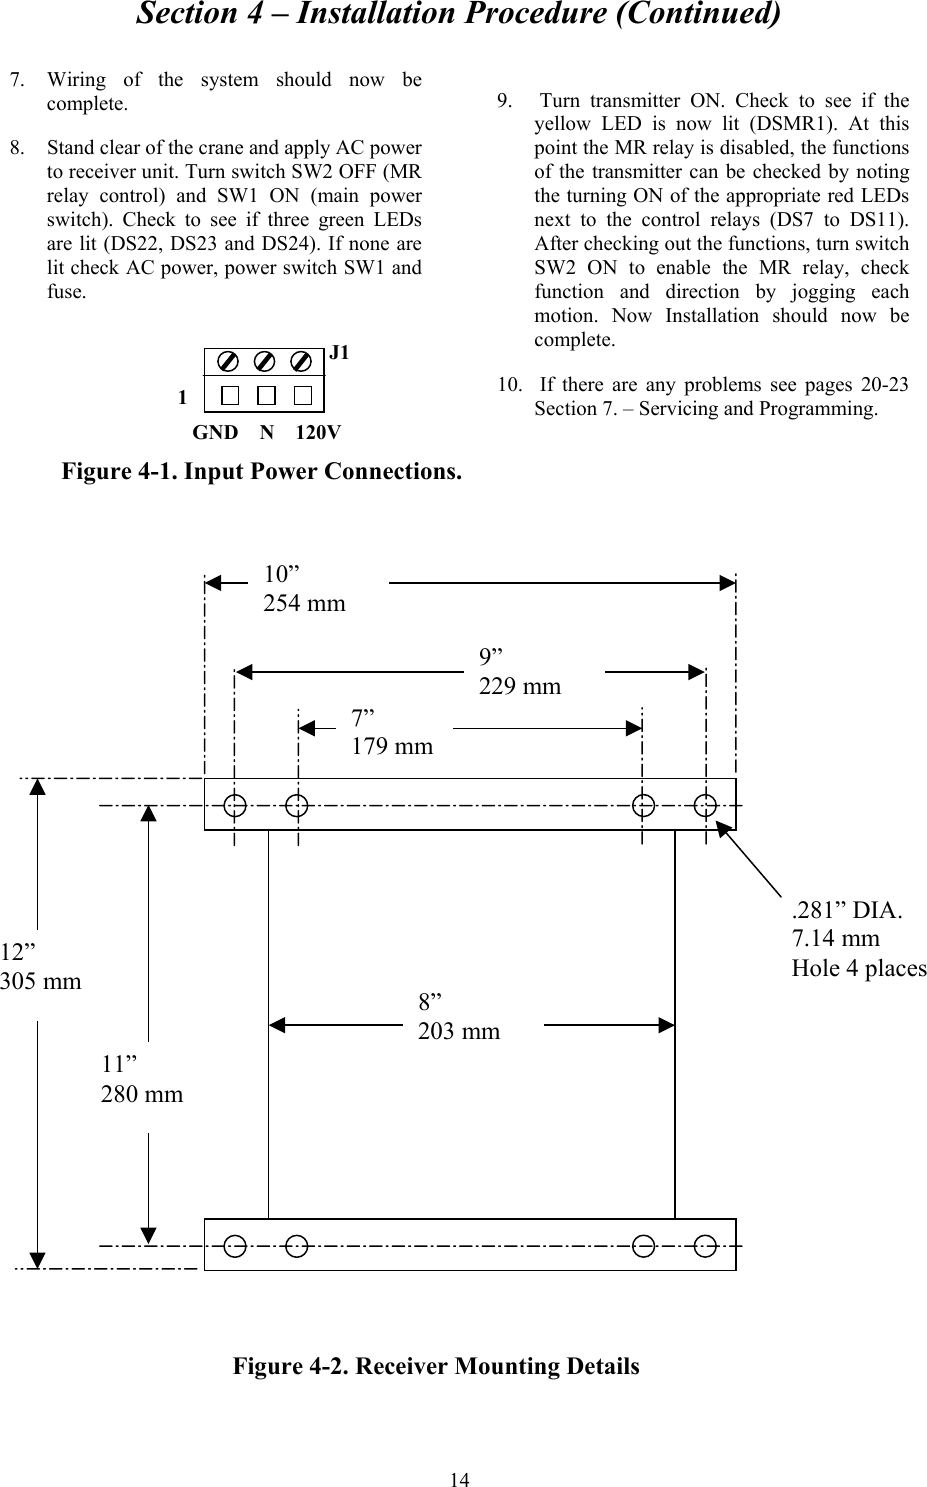 telemotive controls e10647 remote control transmitter user manual crane motor wiring diagram section 4 installation procedure (continued) 14 7 wiring of the system should